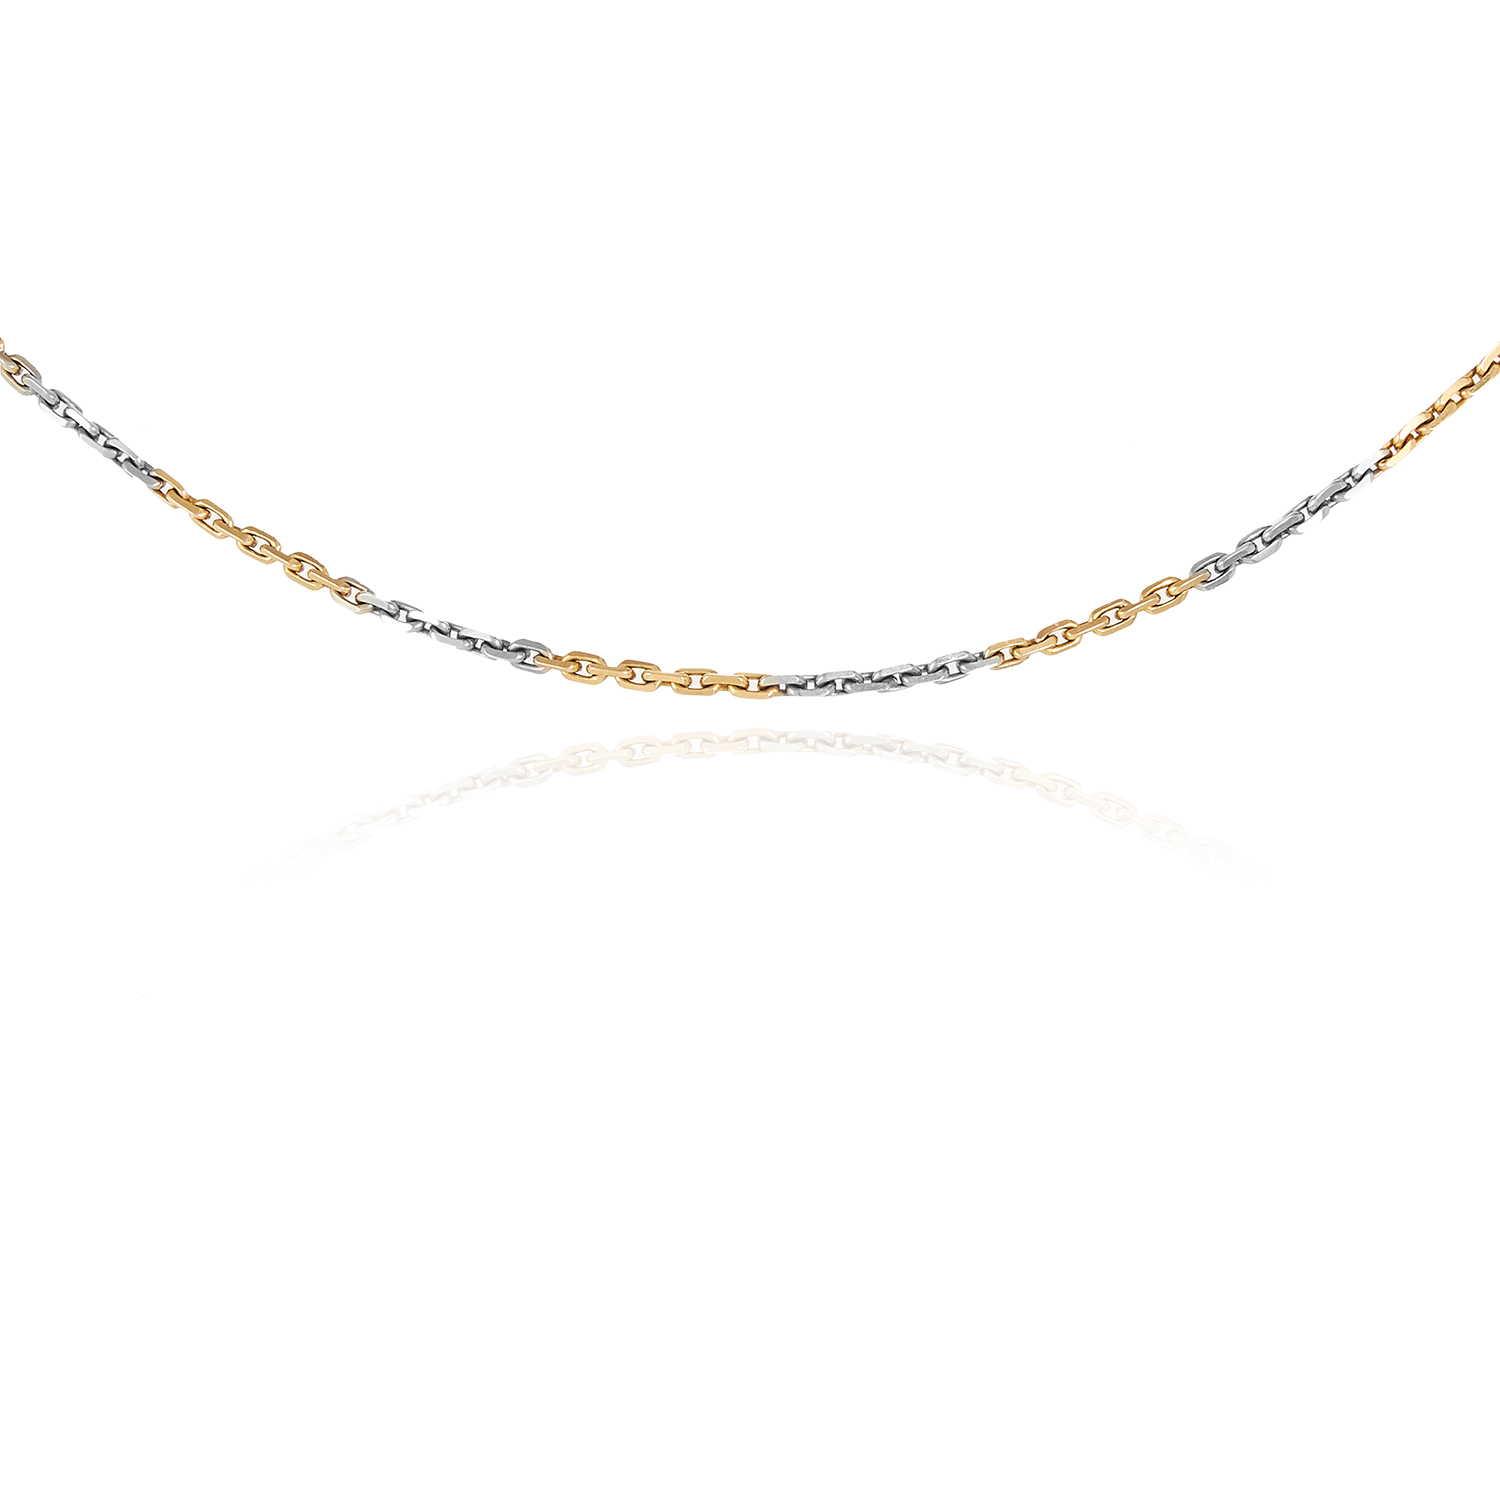 Los 71 - A GOLD WATCH CHAIN in 18ct yellow and white gold, stamped 18ct, 33.0cm, 9.3g.